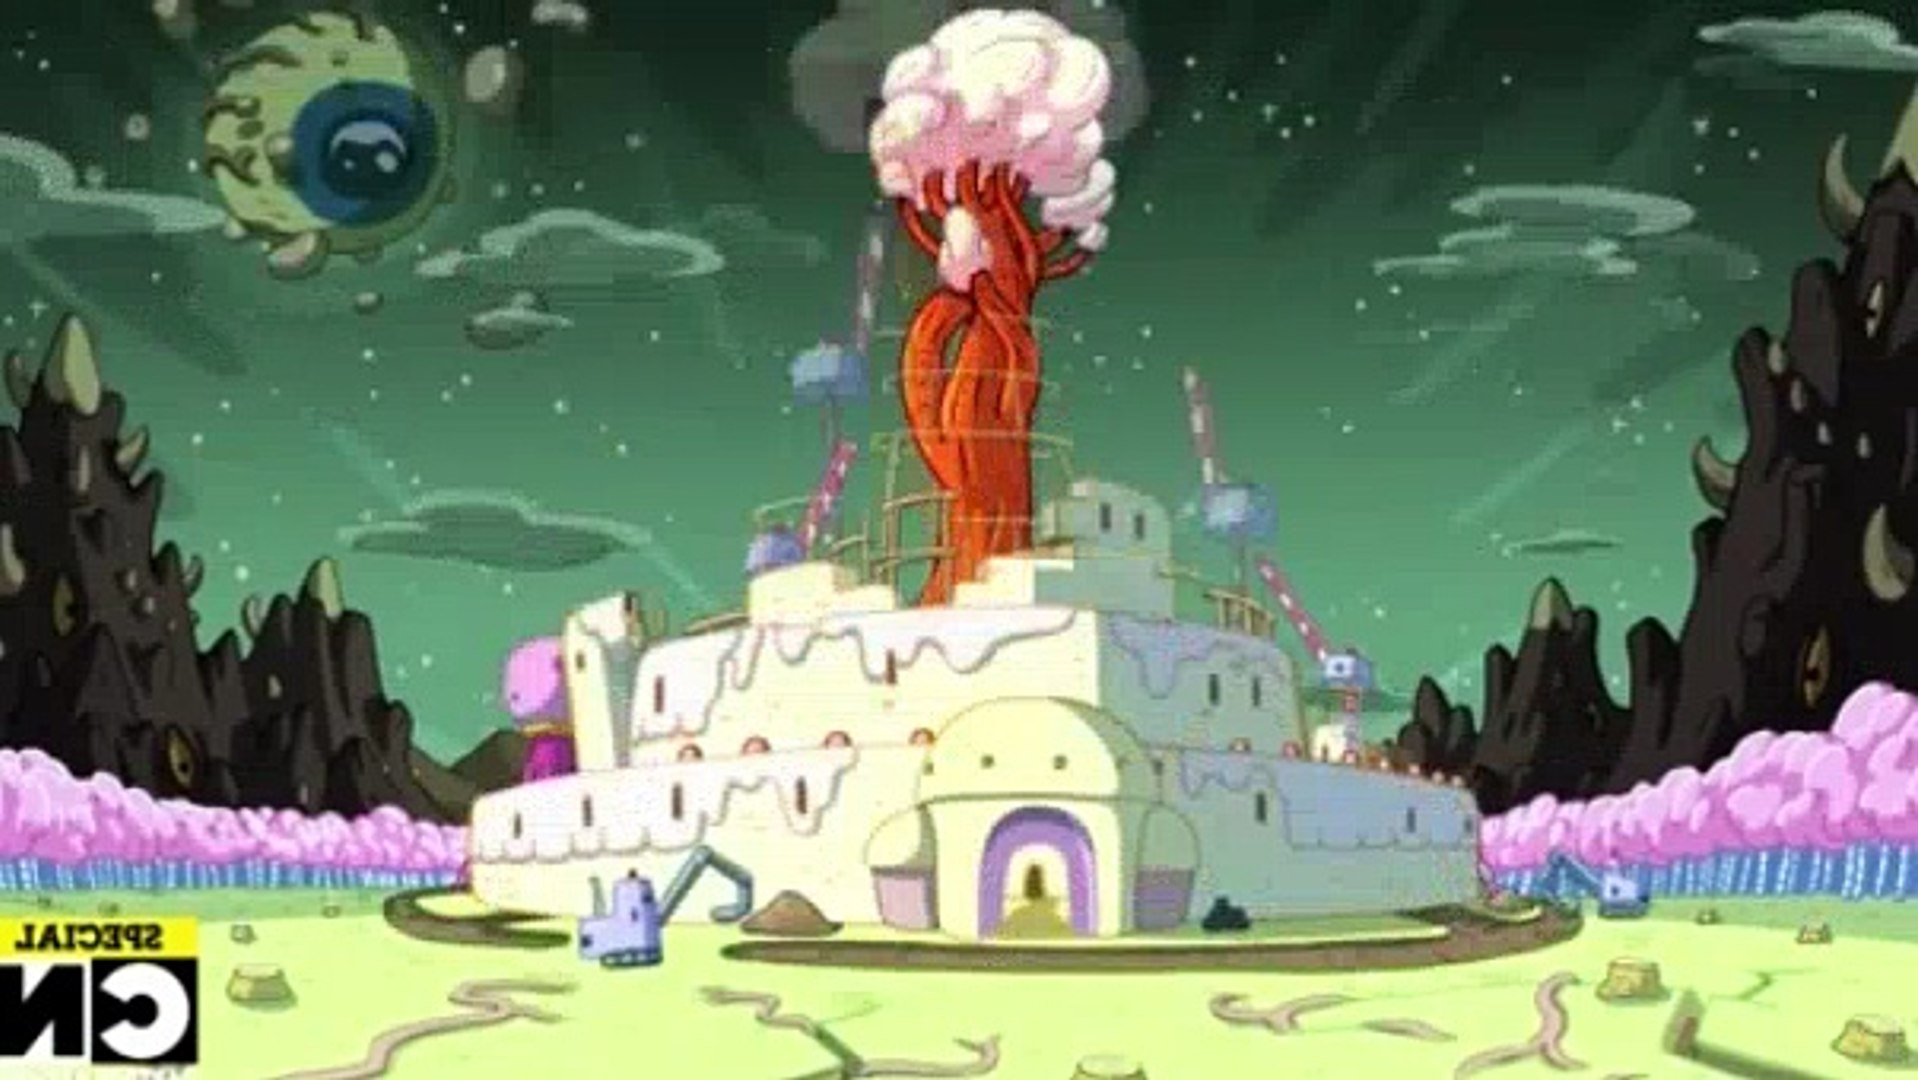 Come Along With Me Adventure Time Episode Dailymotion idea